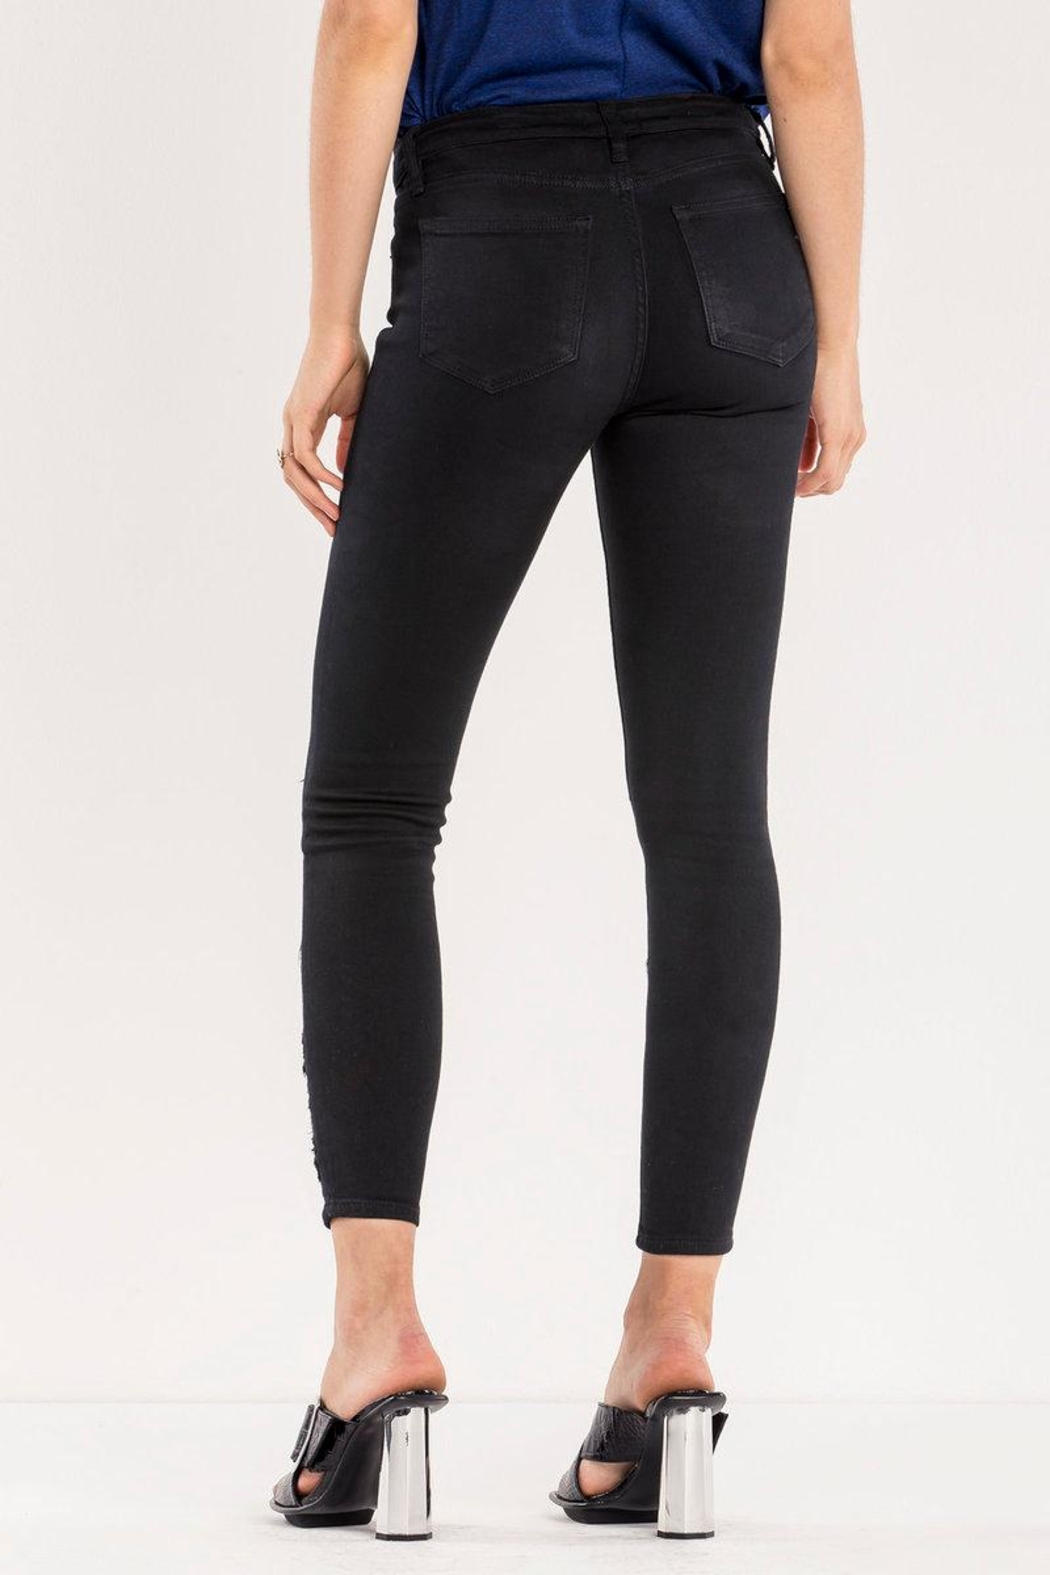 Miss Me Lace Ankle Skinny Jean - Side Cropped Image